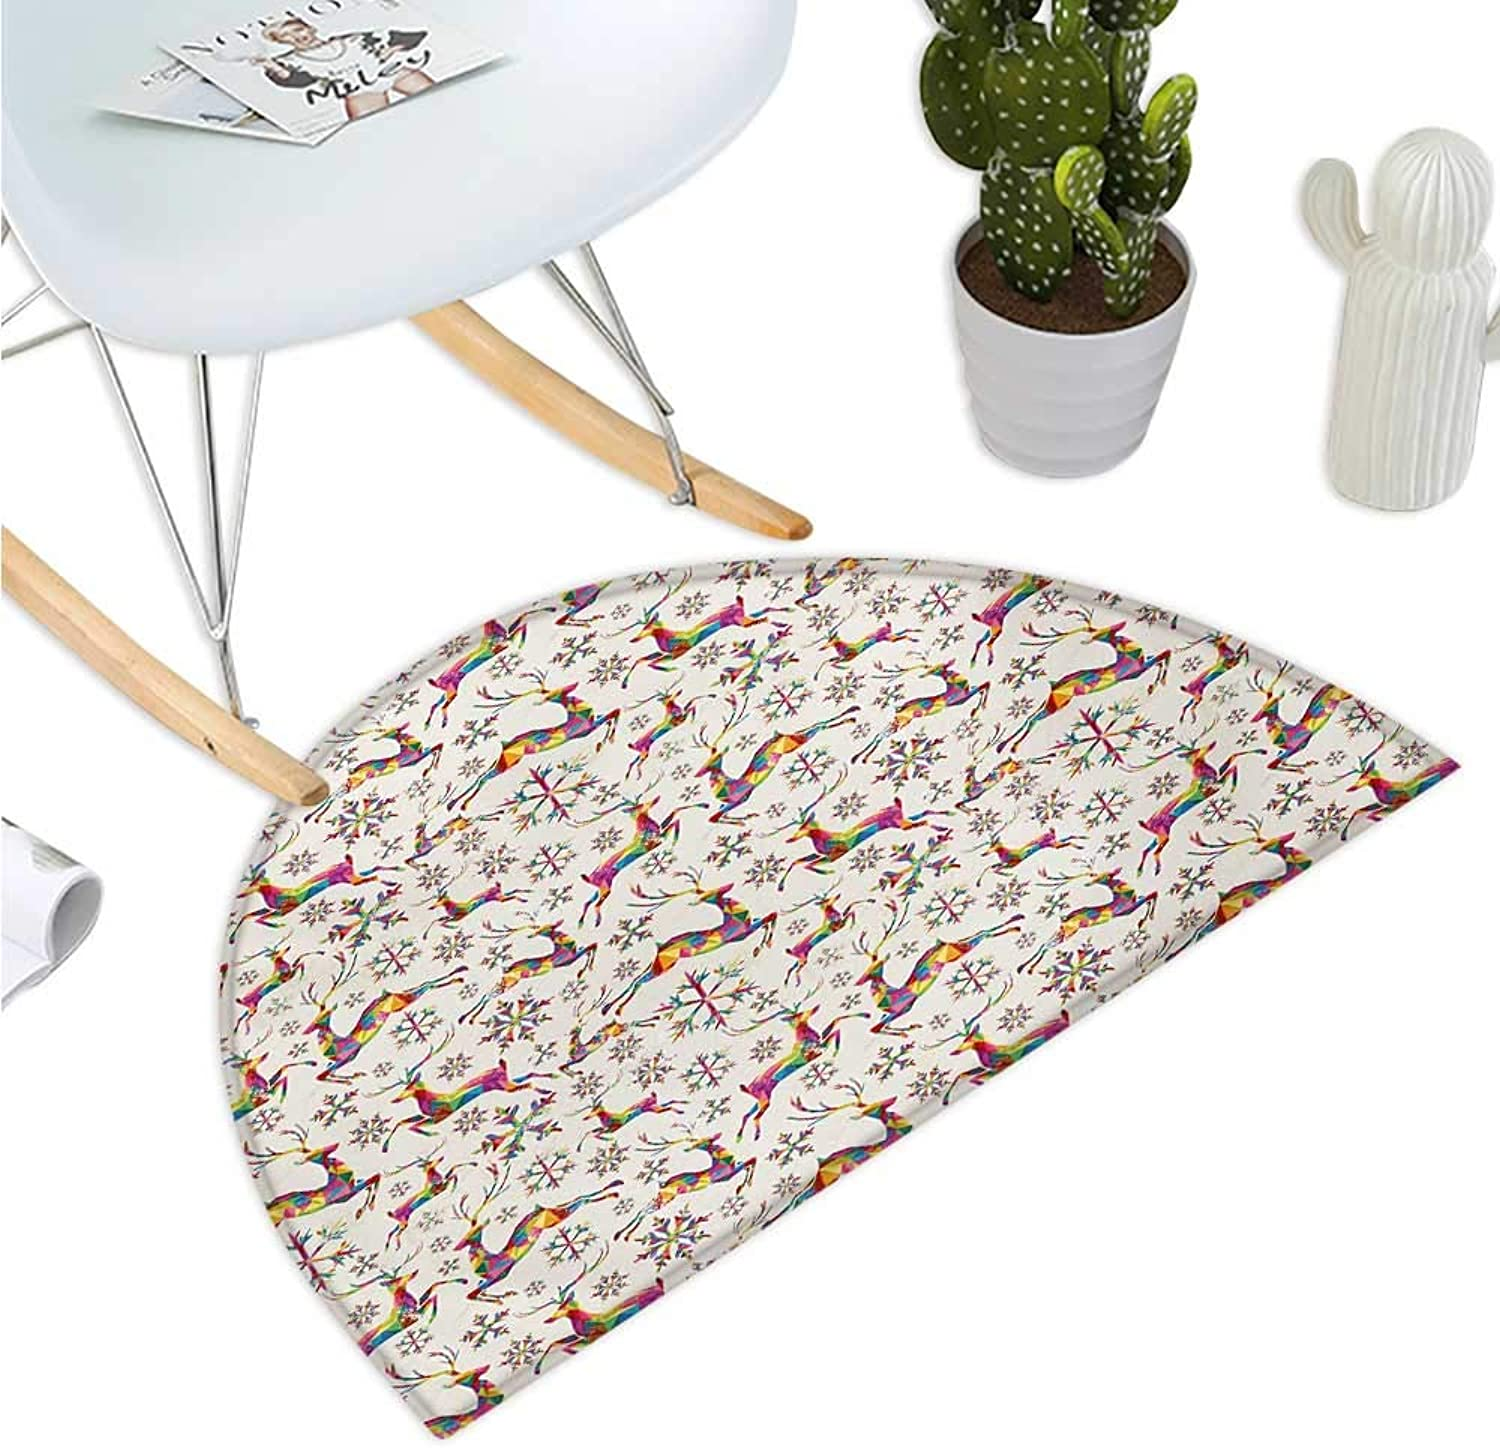 Deer Semicircular Cushion Christmas Themed Rainbow Snowflakes and Animals Pattern Geometric Polygonal Design Bathroom Mat H 51.1  xD 76.7  Multicolor